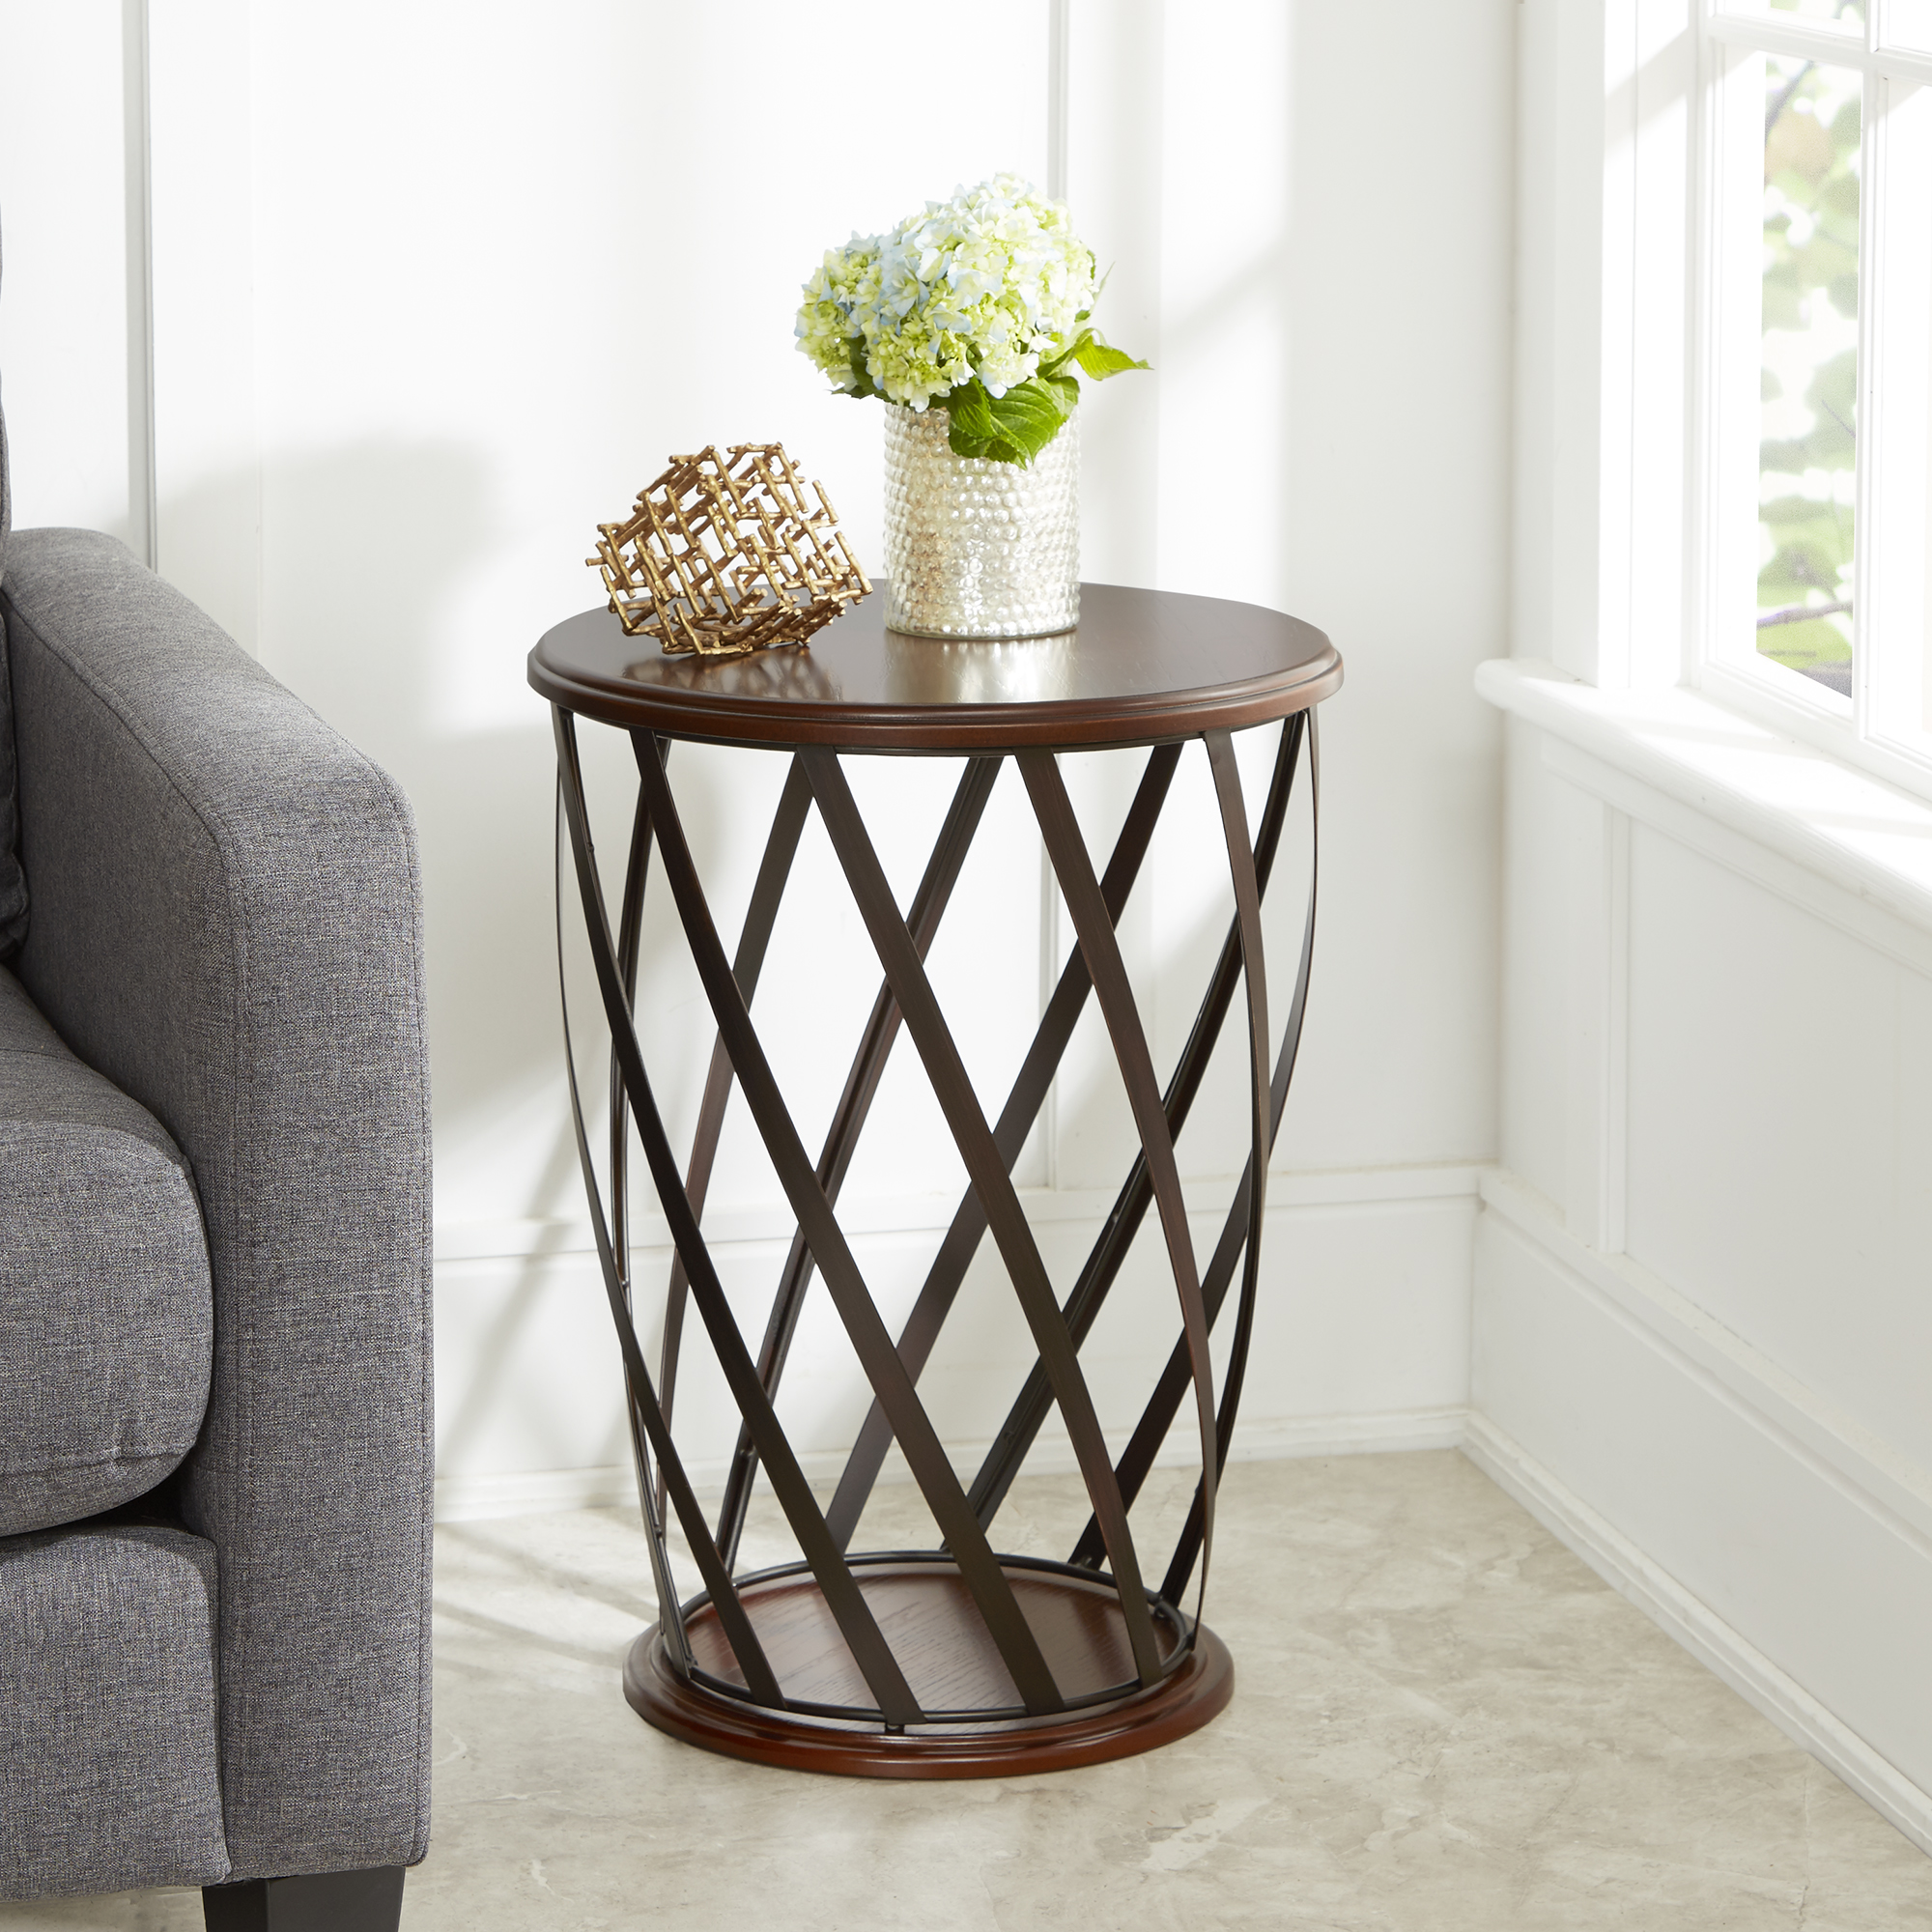 Better Homes and Gardens Industrial Cage Metal and Wood Accent Table by Cheyenne Products